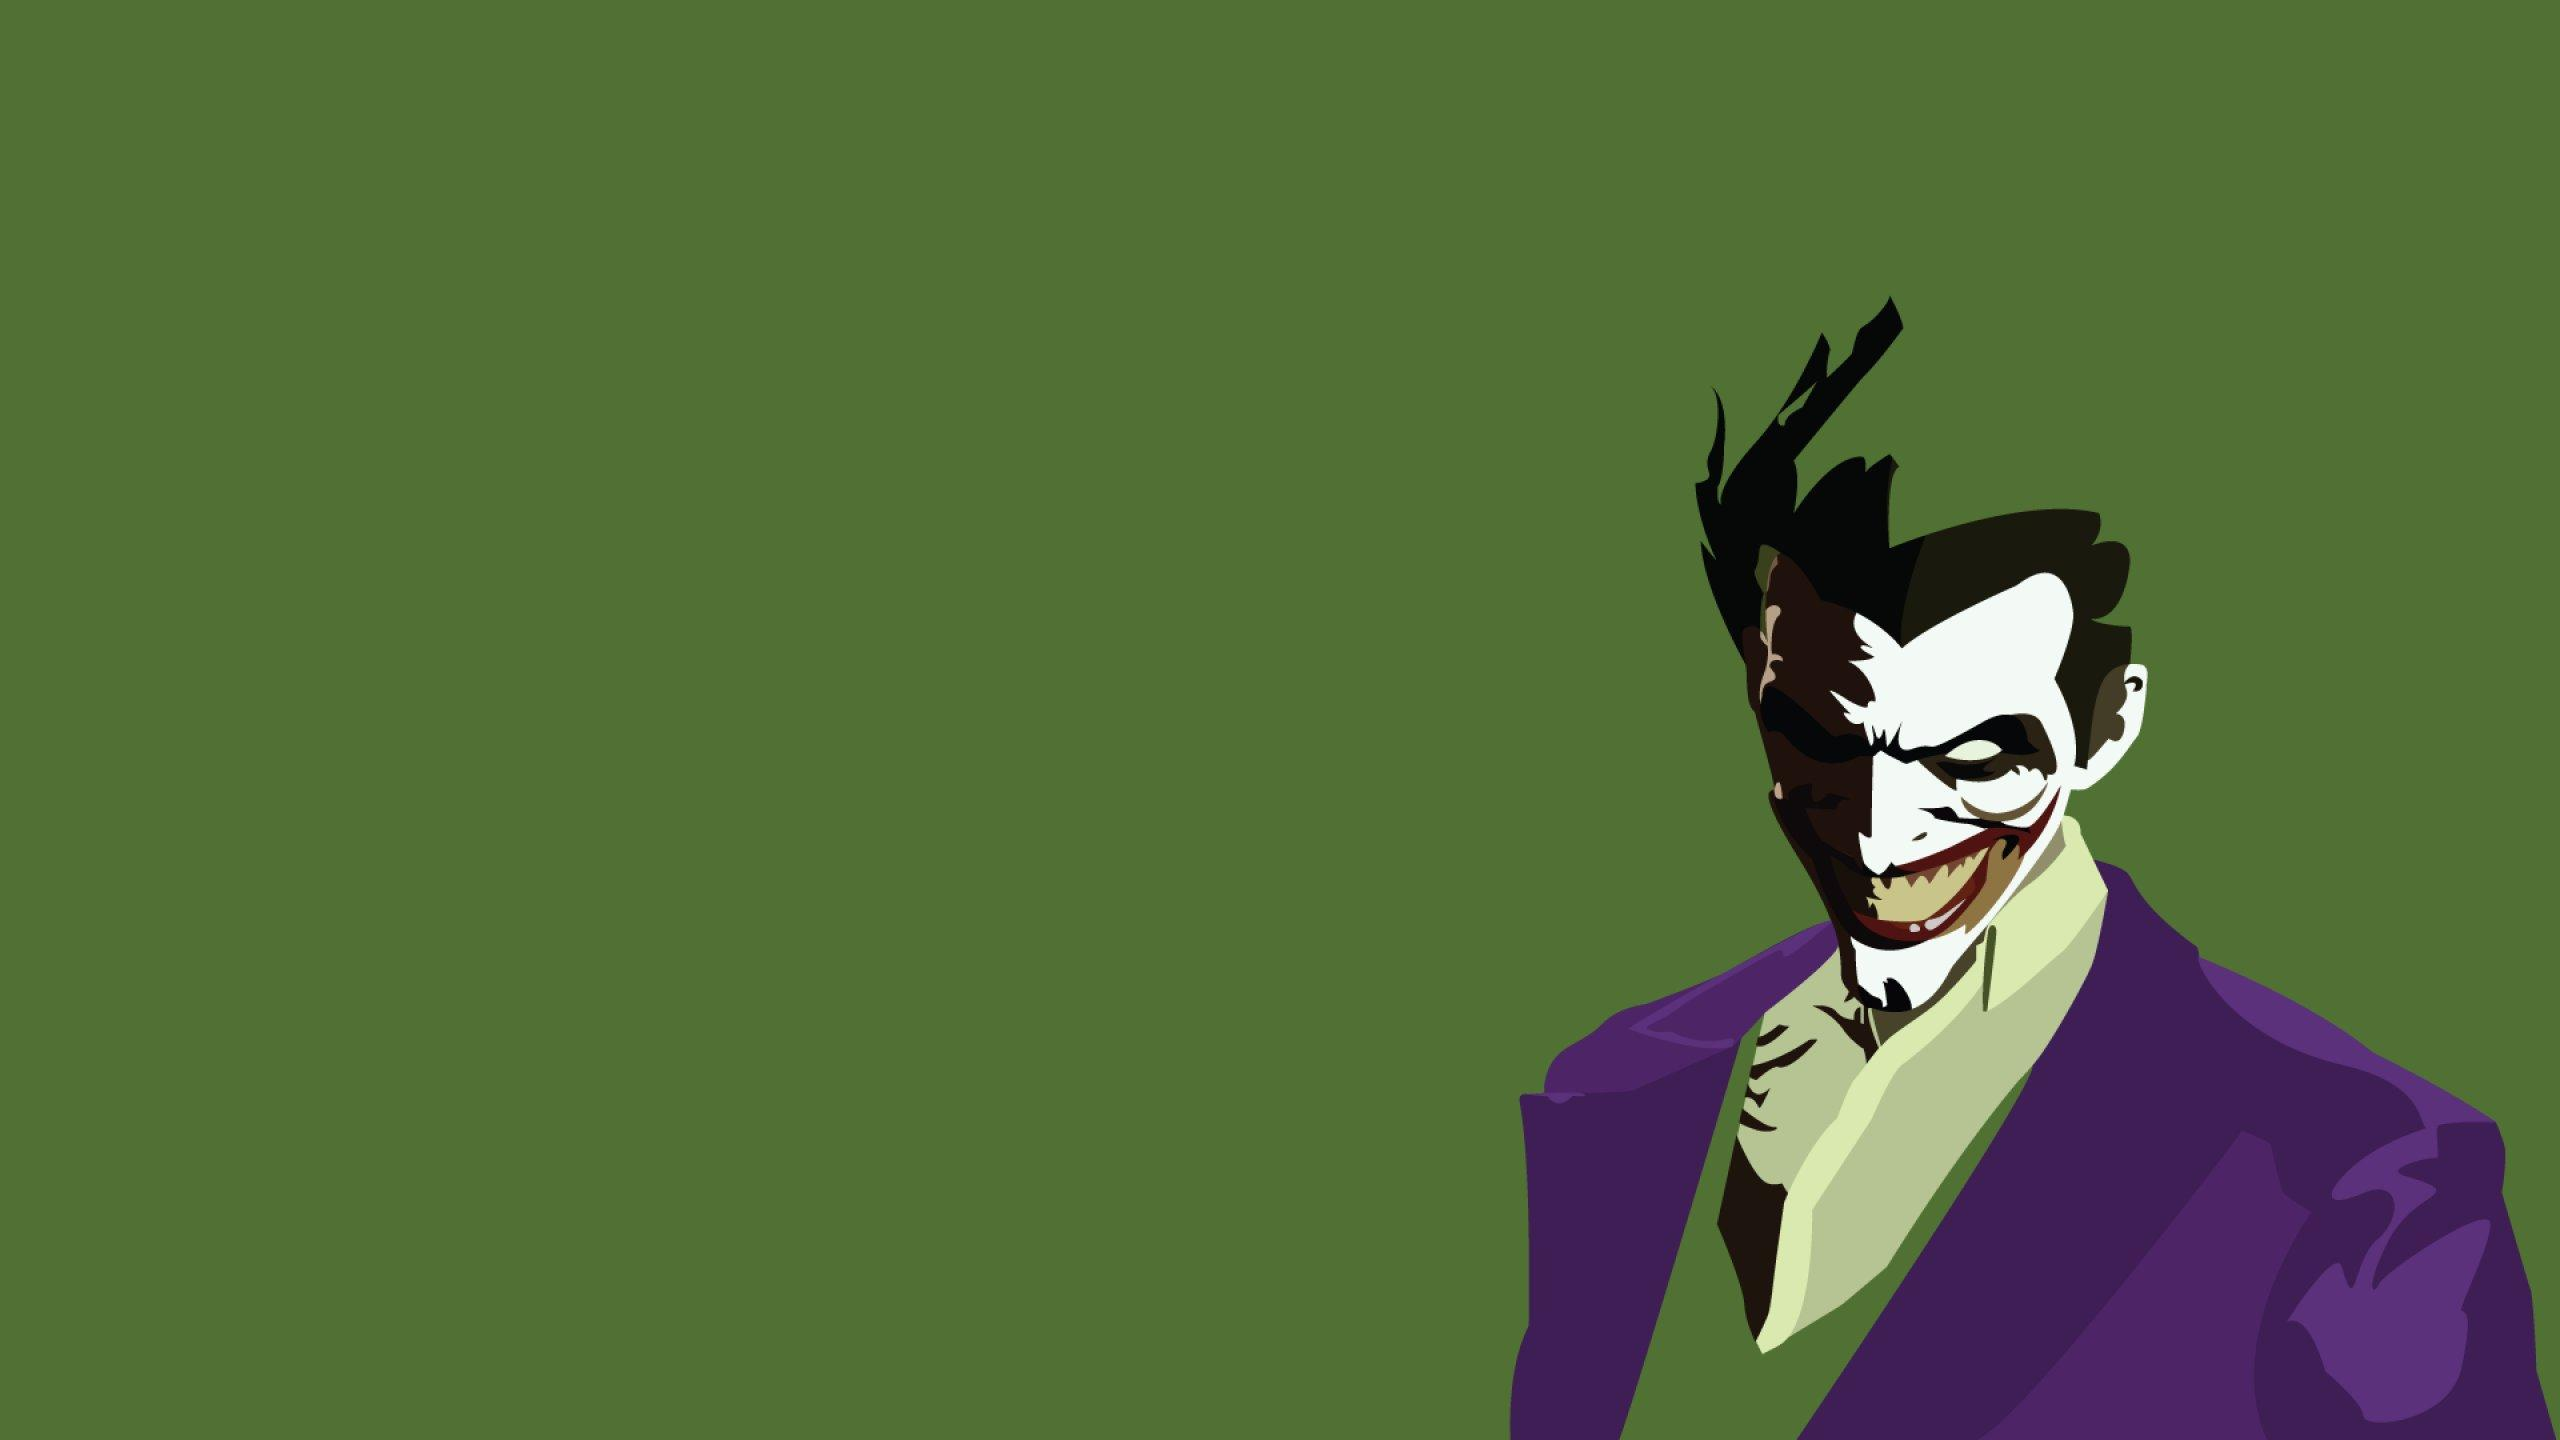 Dc Comics Joker HD Wallpaper